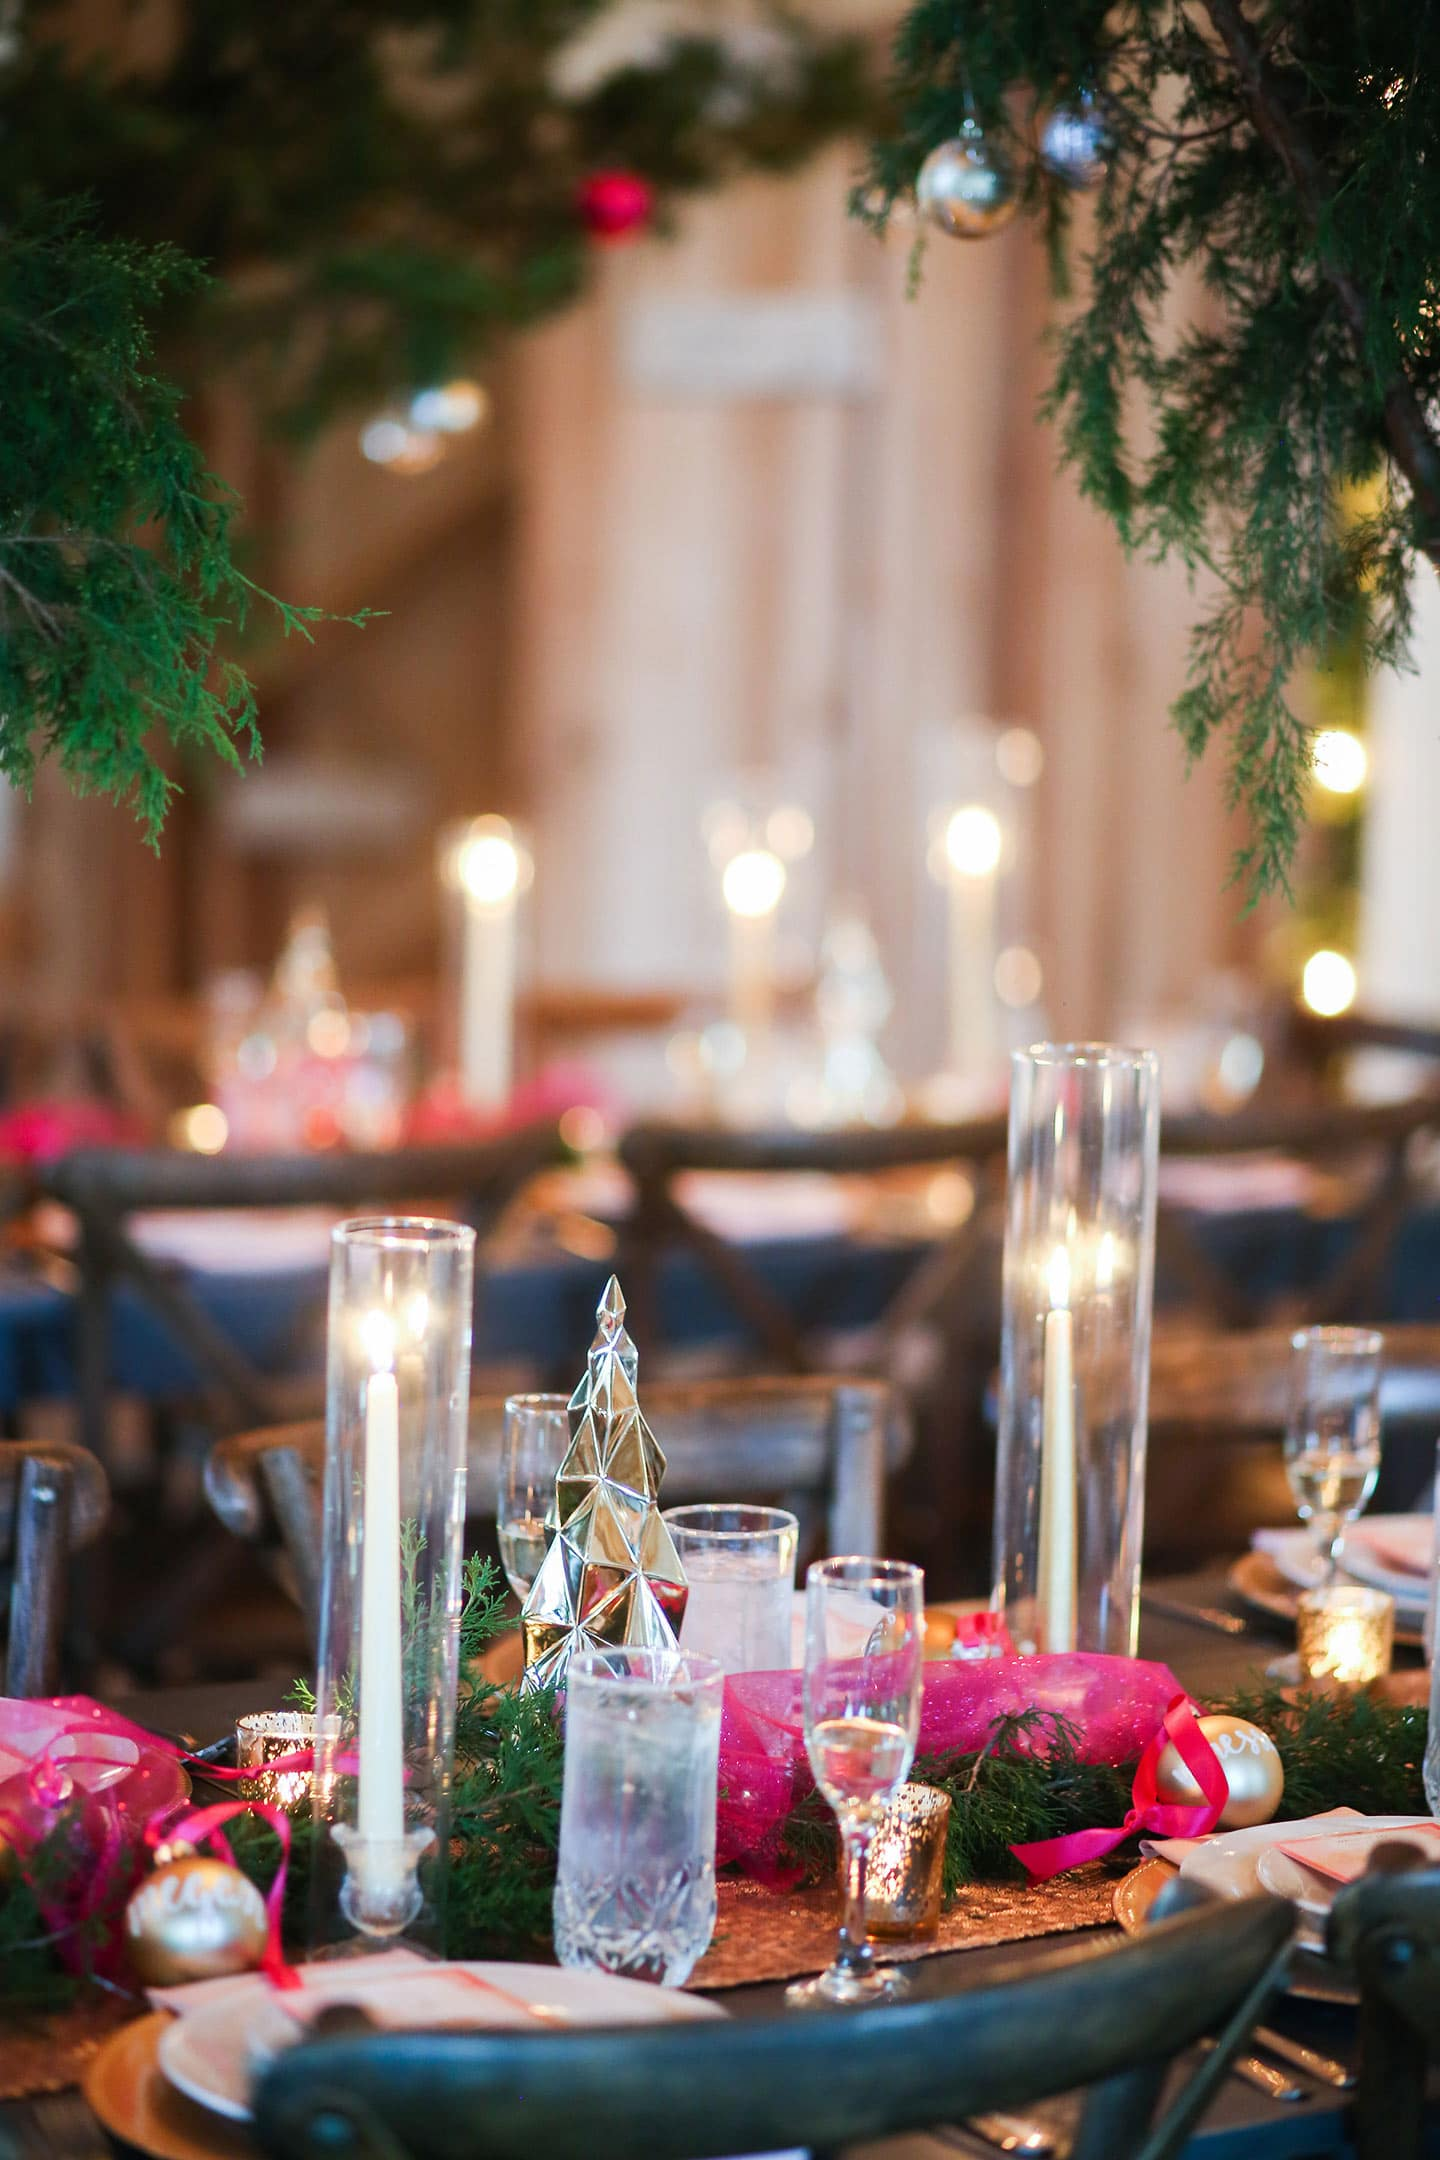 A dining table with wine glasses, with Party and Holiday